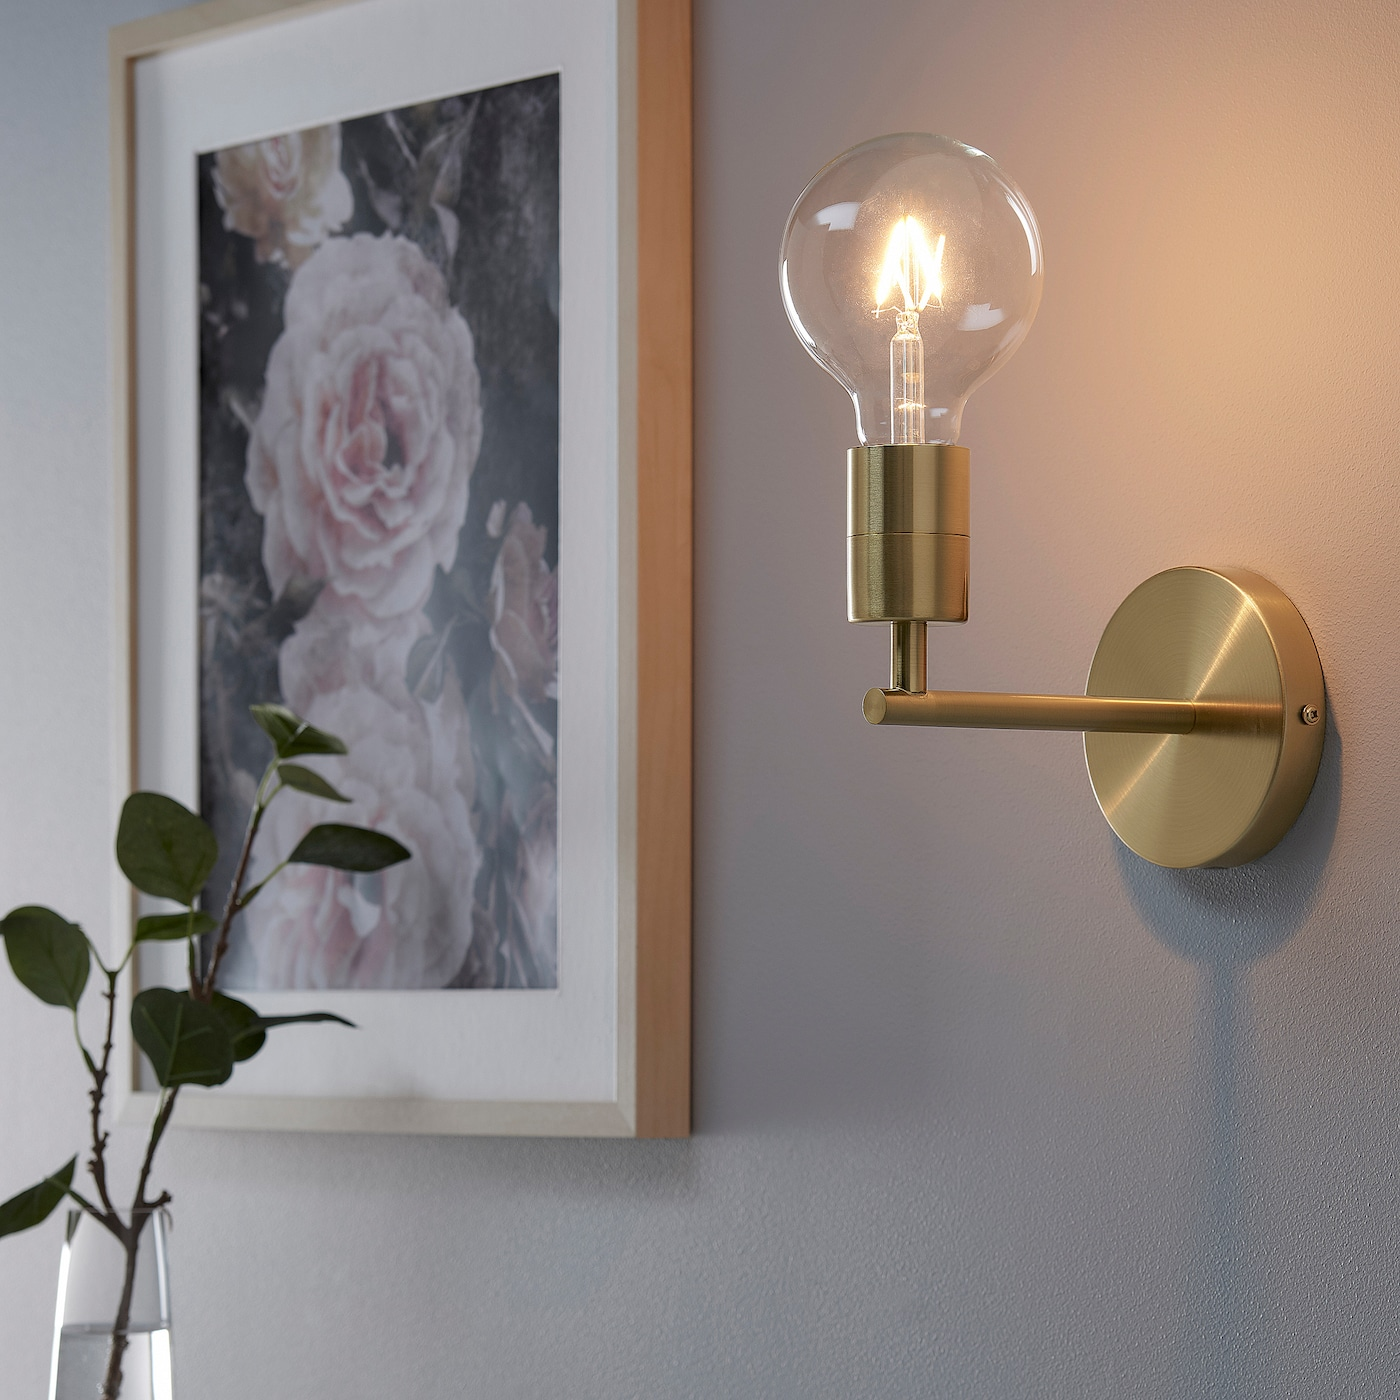 Skaftet Wall Lamp Wired In Installation Brass Plated Ikea